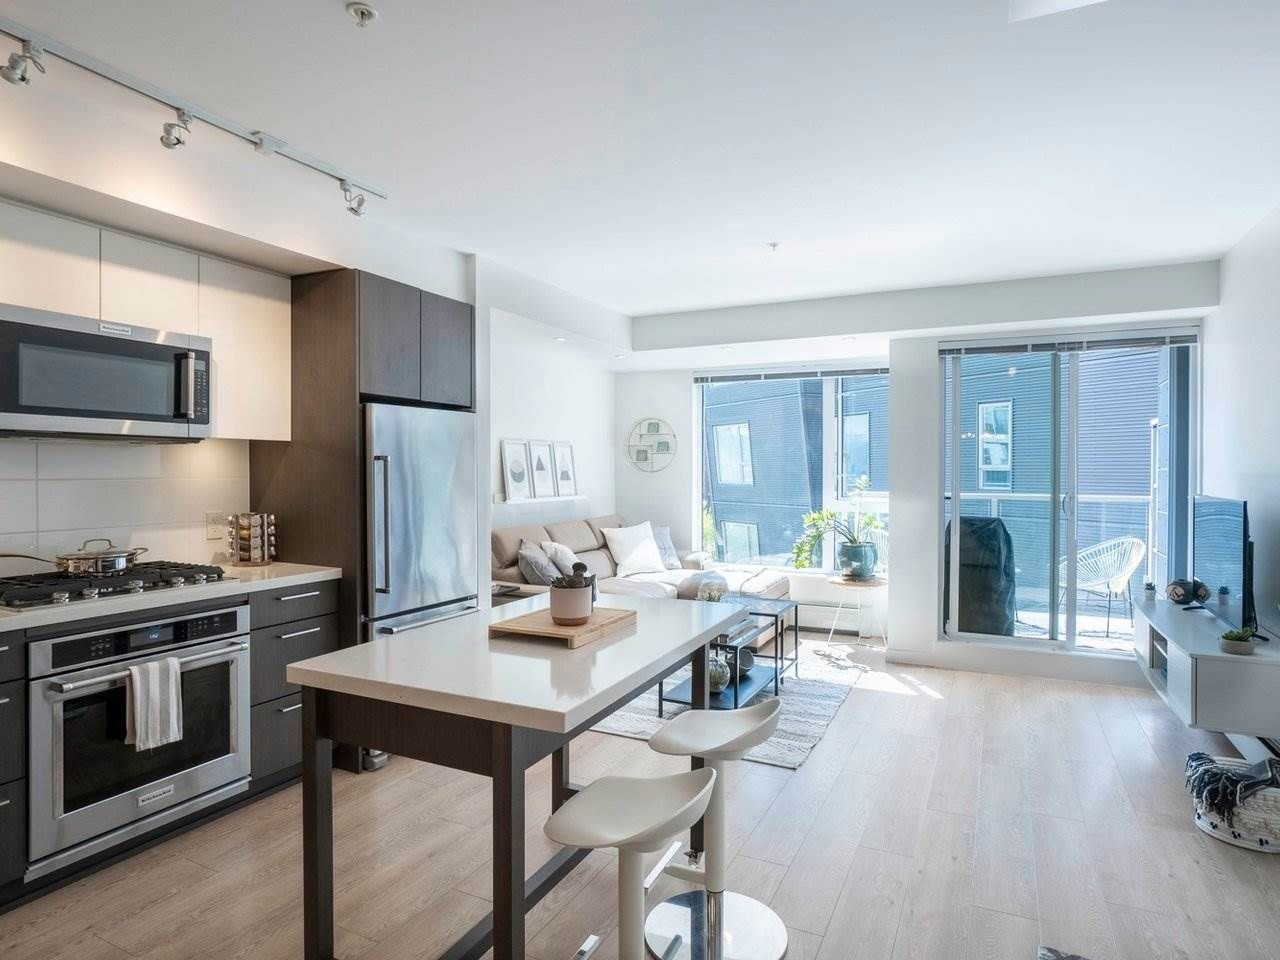 """Main Photo: 520 384 E 1ST Avenue in Vancouver: Strathcona Condo for sale in """"Canvas"""" (Vancouver East)  : MLS®# R2568720"""